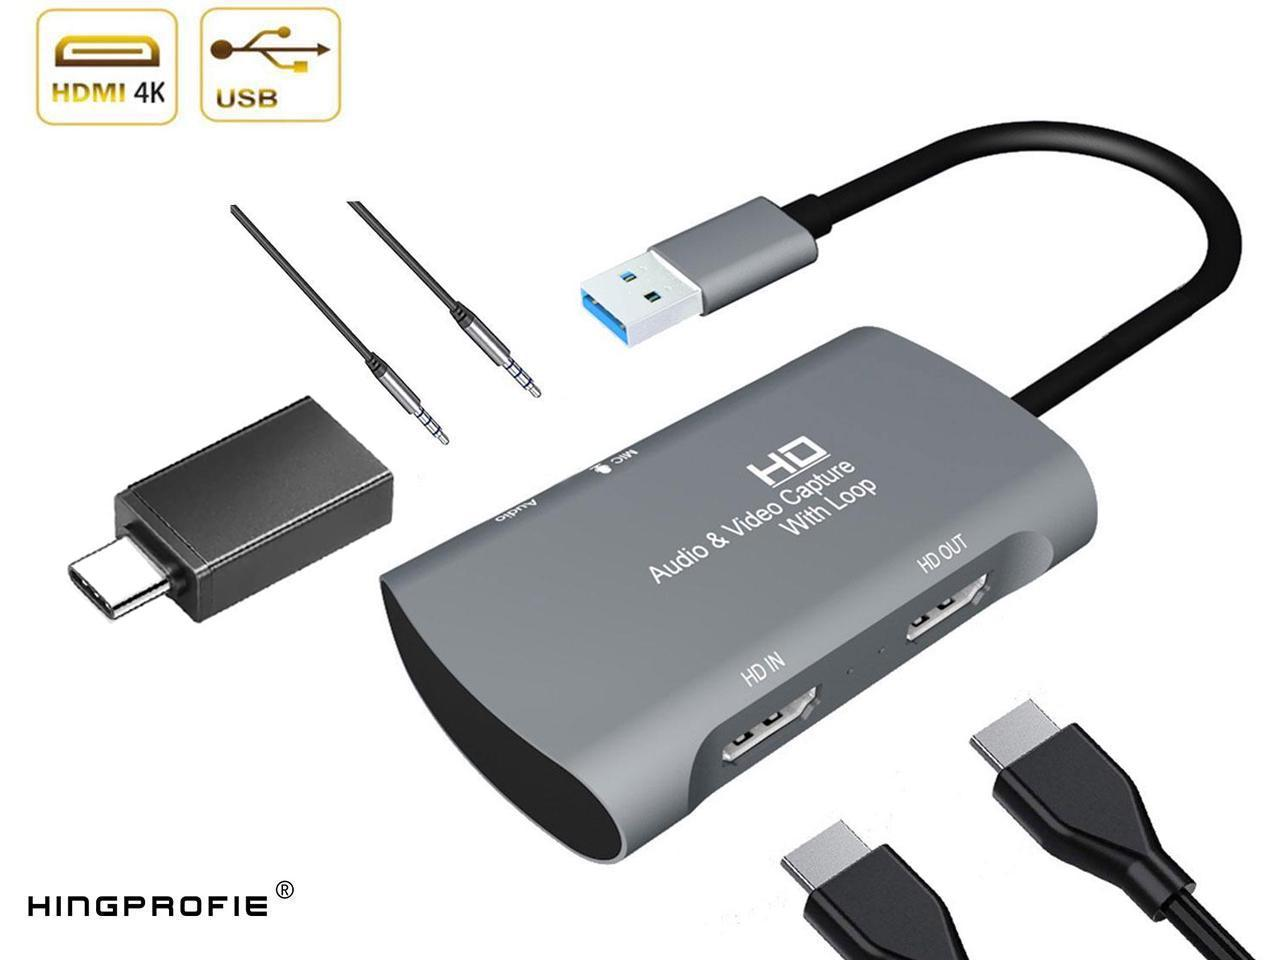 Coffee Capture Card Video Capture Device Game Capture Card USB to HDMI USB Card 4K Camcorder no Cable